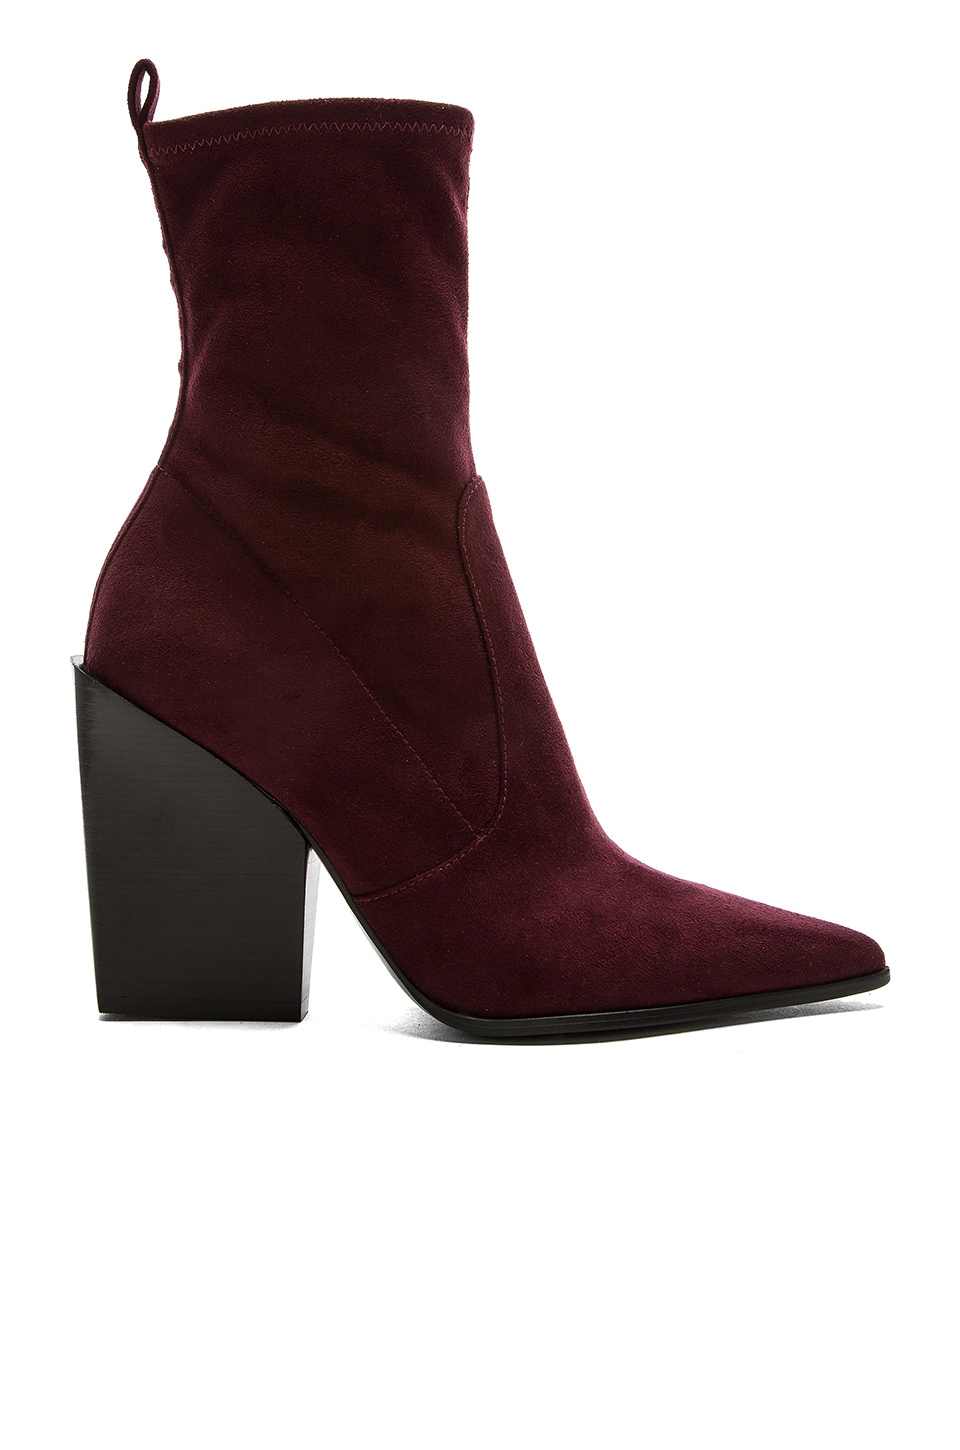 KENDALL + KYLIE Felicia Bootie in Dark Red Fabric